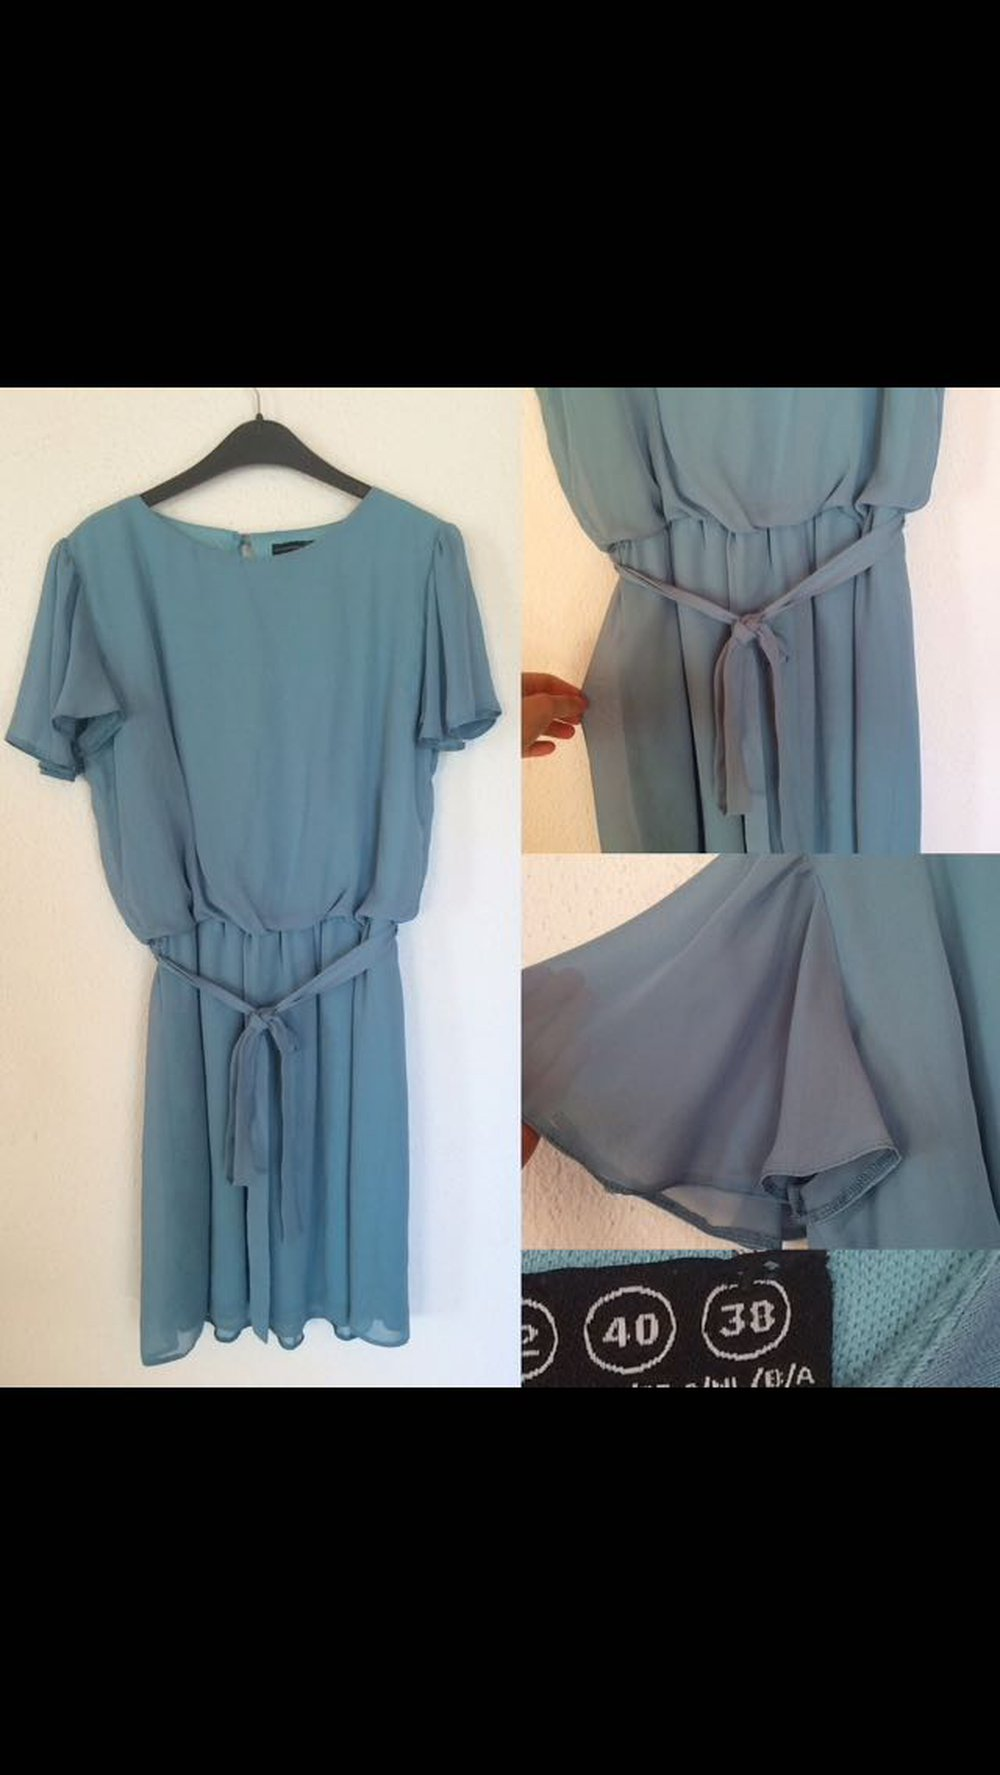 mintfarbenes kleid gr 38. Black Bedroom Furniture Sets. Home Design Ideas